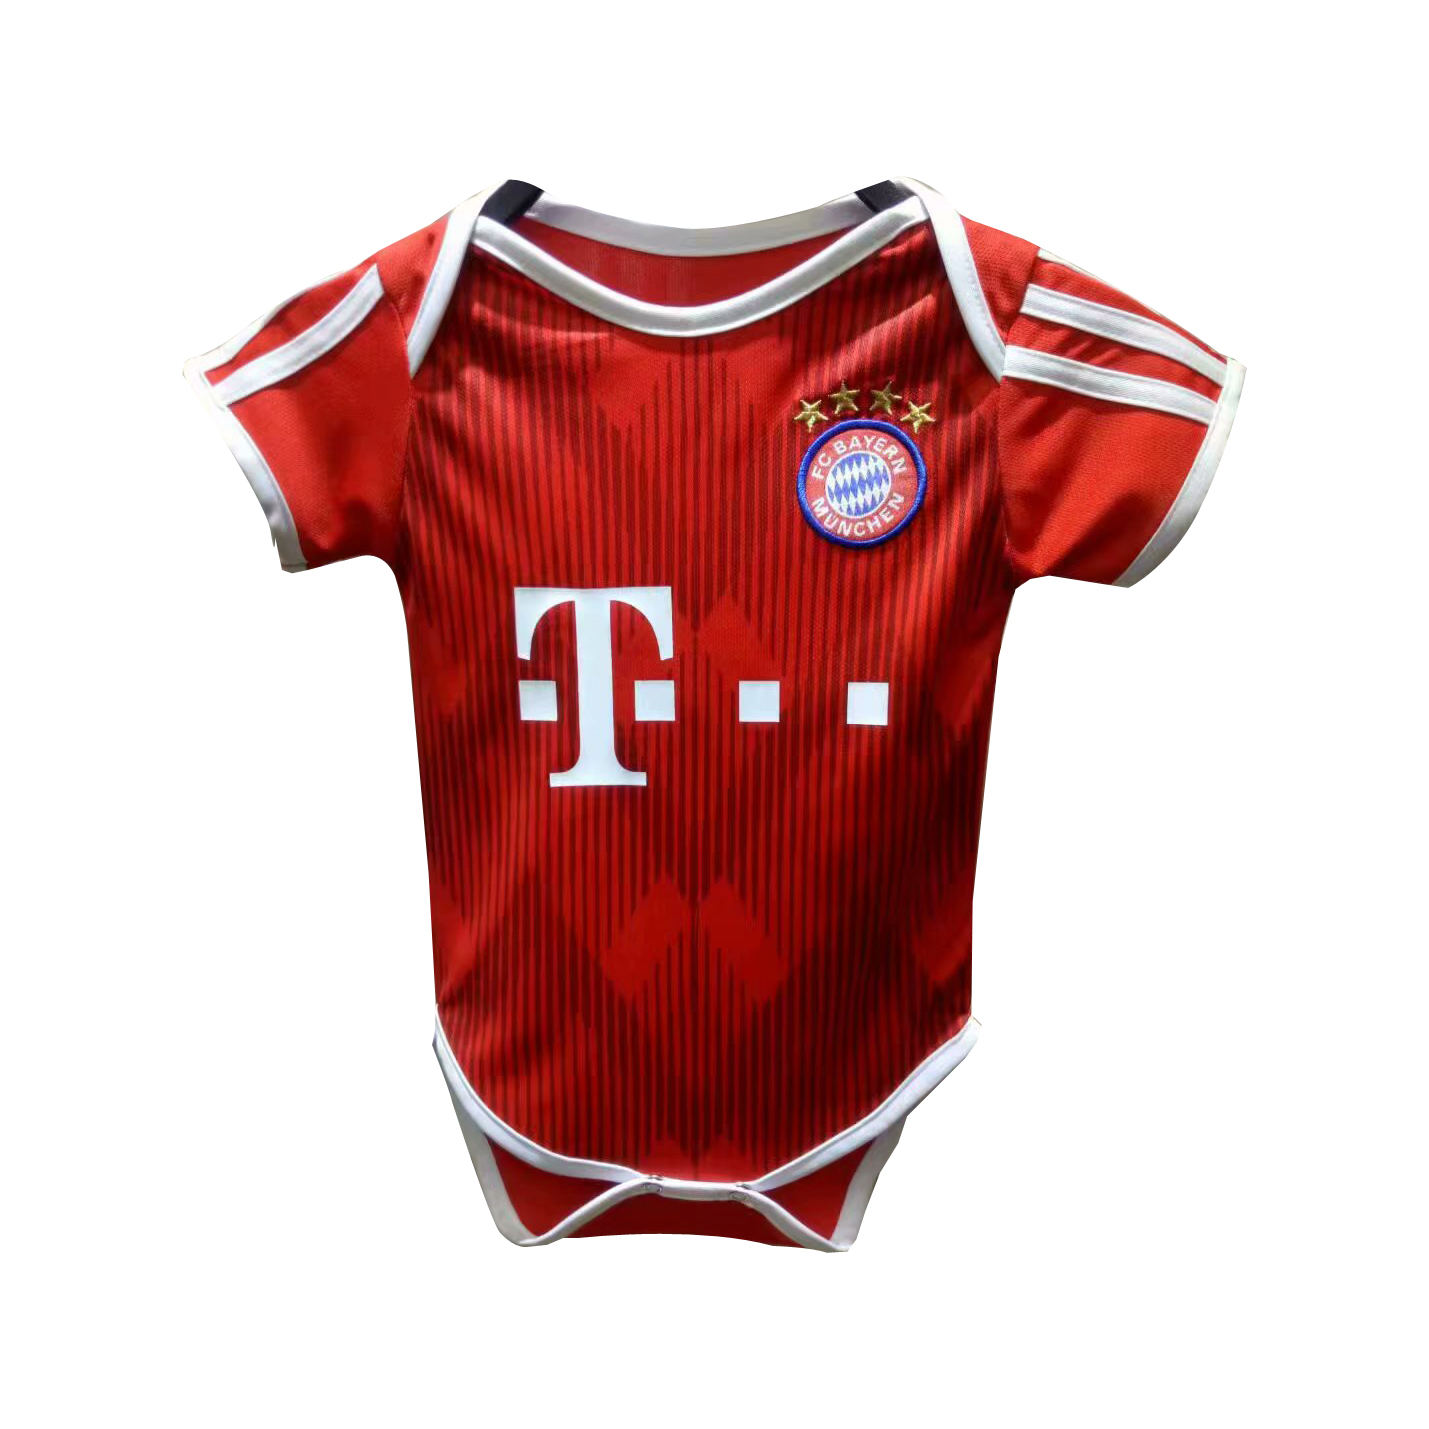 Bayern Munich Baby Soccer Jersey Suit 2018-19 Home Infant Football Shirts